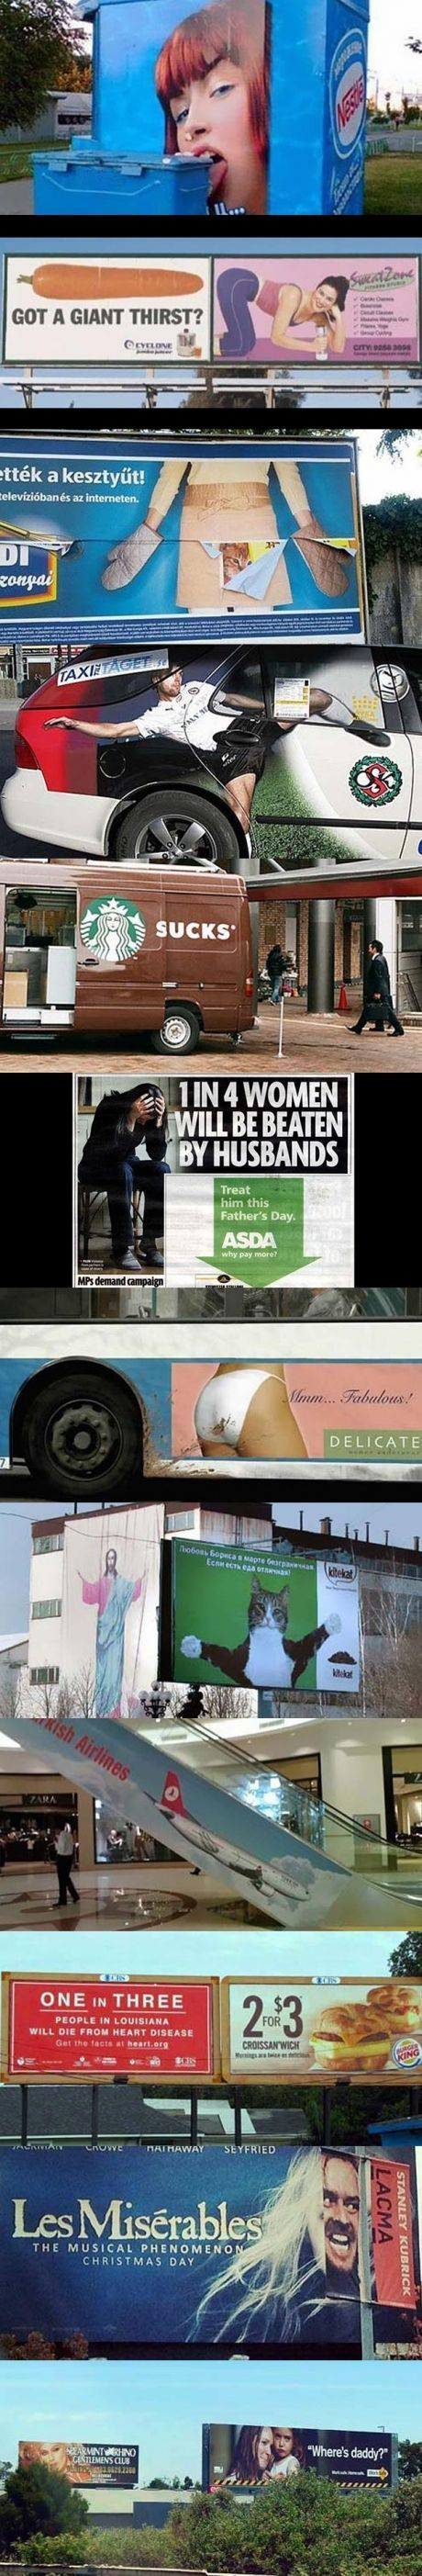 Awkward Ad Placements!: